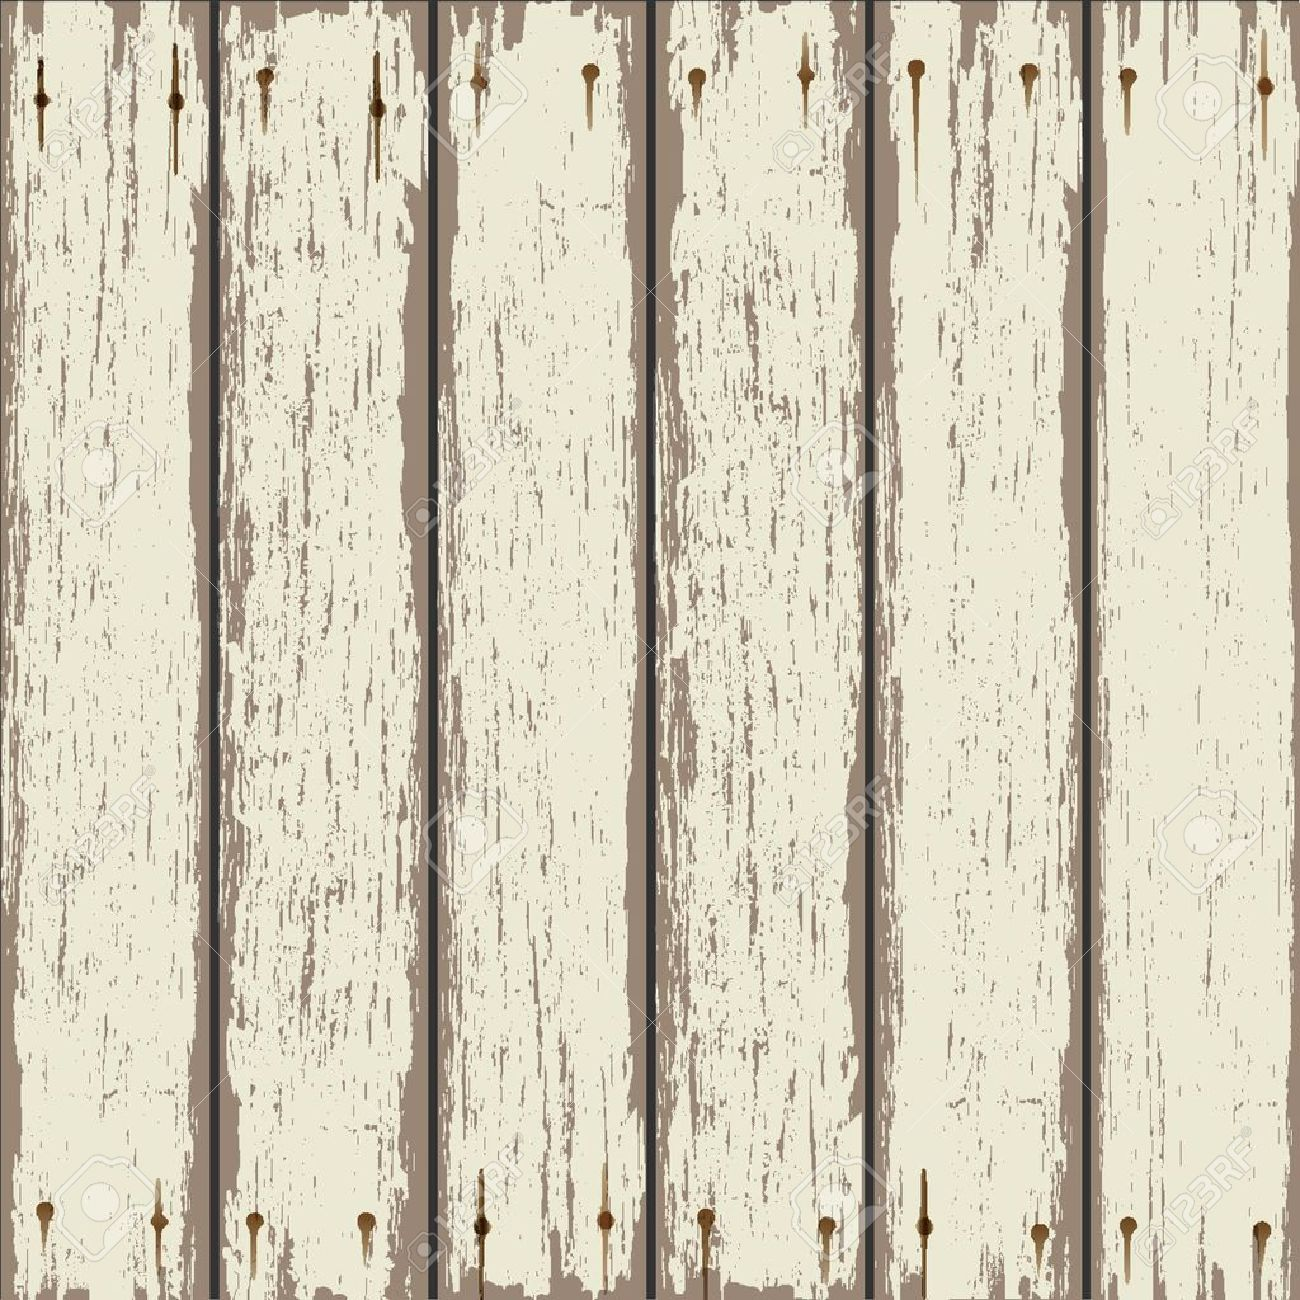 wood picket fence texture. Old Wooden Fence. Vector Background Stock - 14659839 Wood Picket Fence Texture E